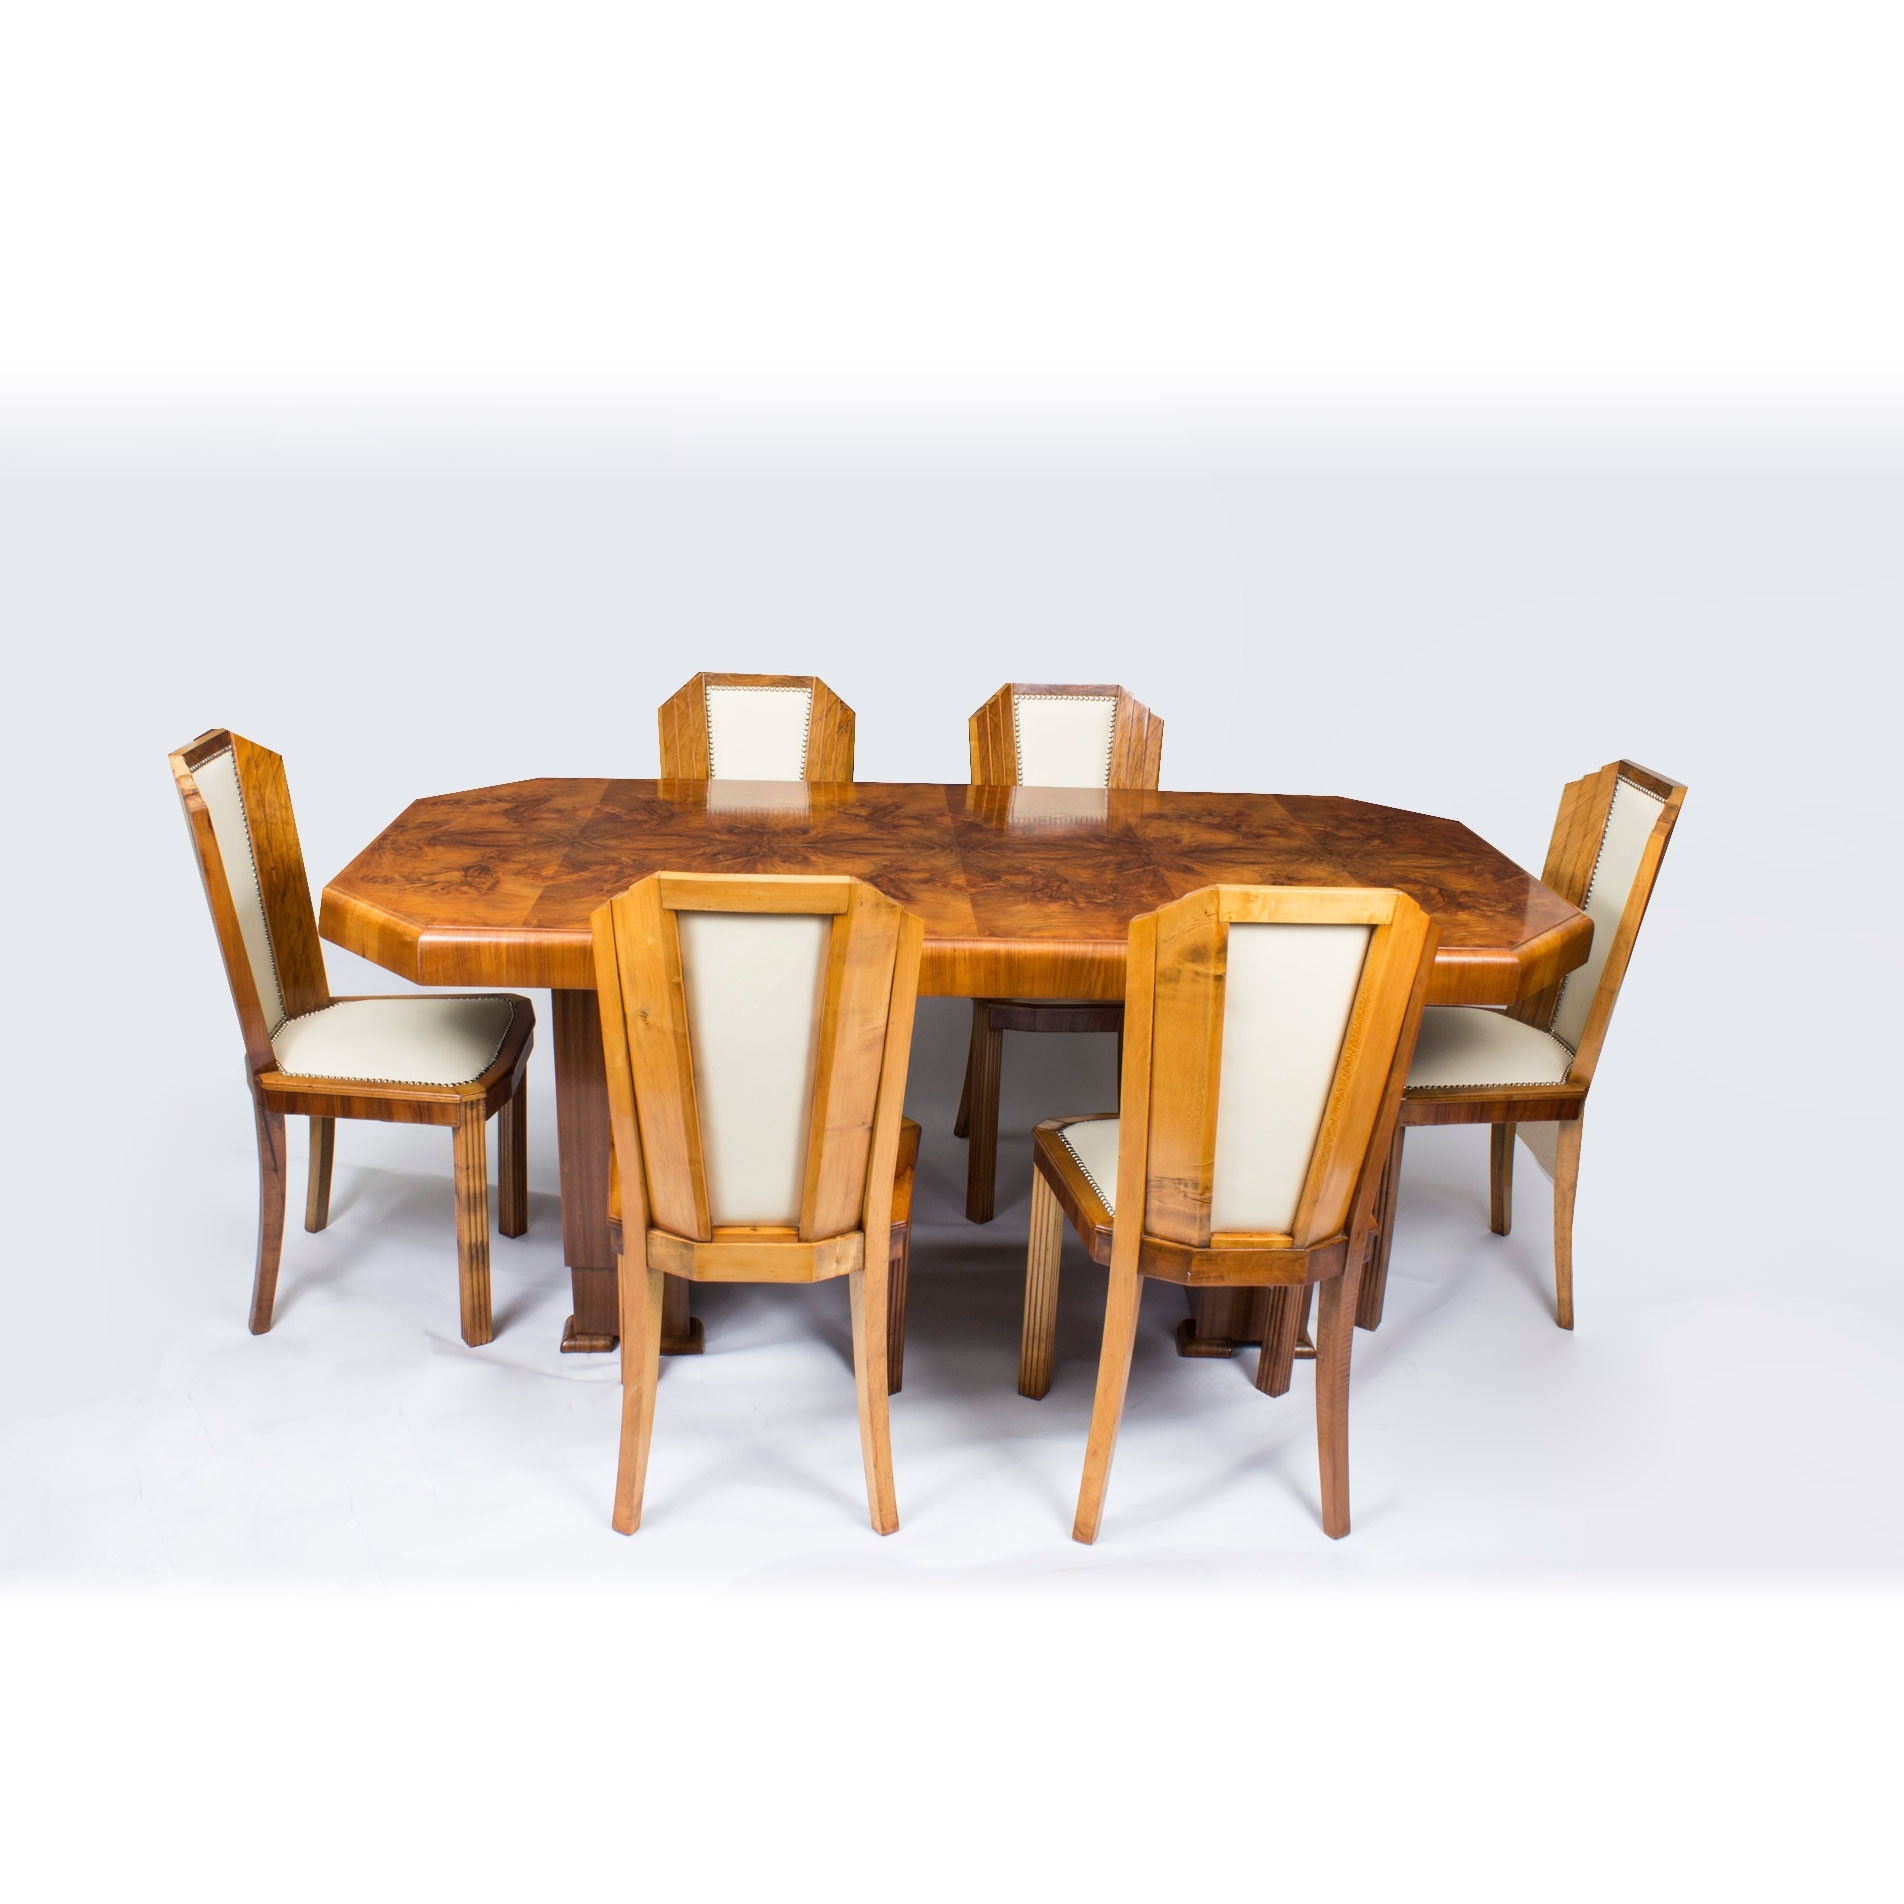 1930S Art Deco Burr Walnut Dining Table 6 Chairs (C (View 25 of 25)